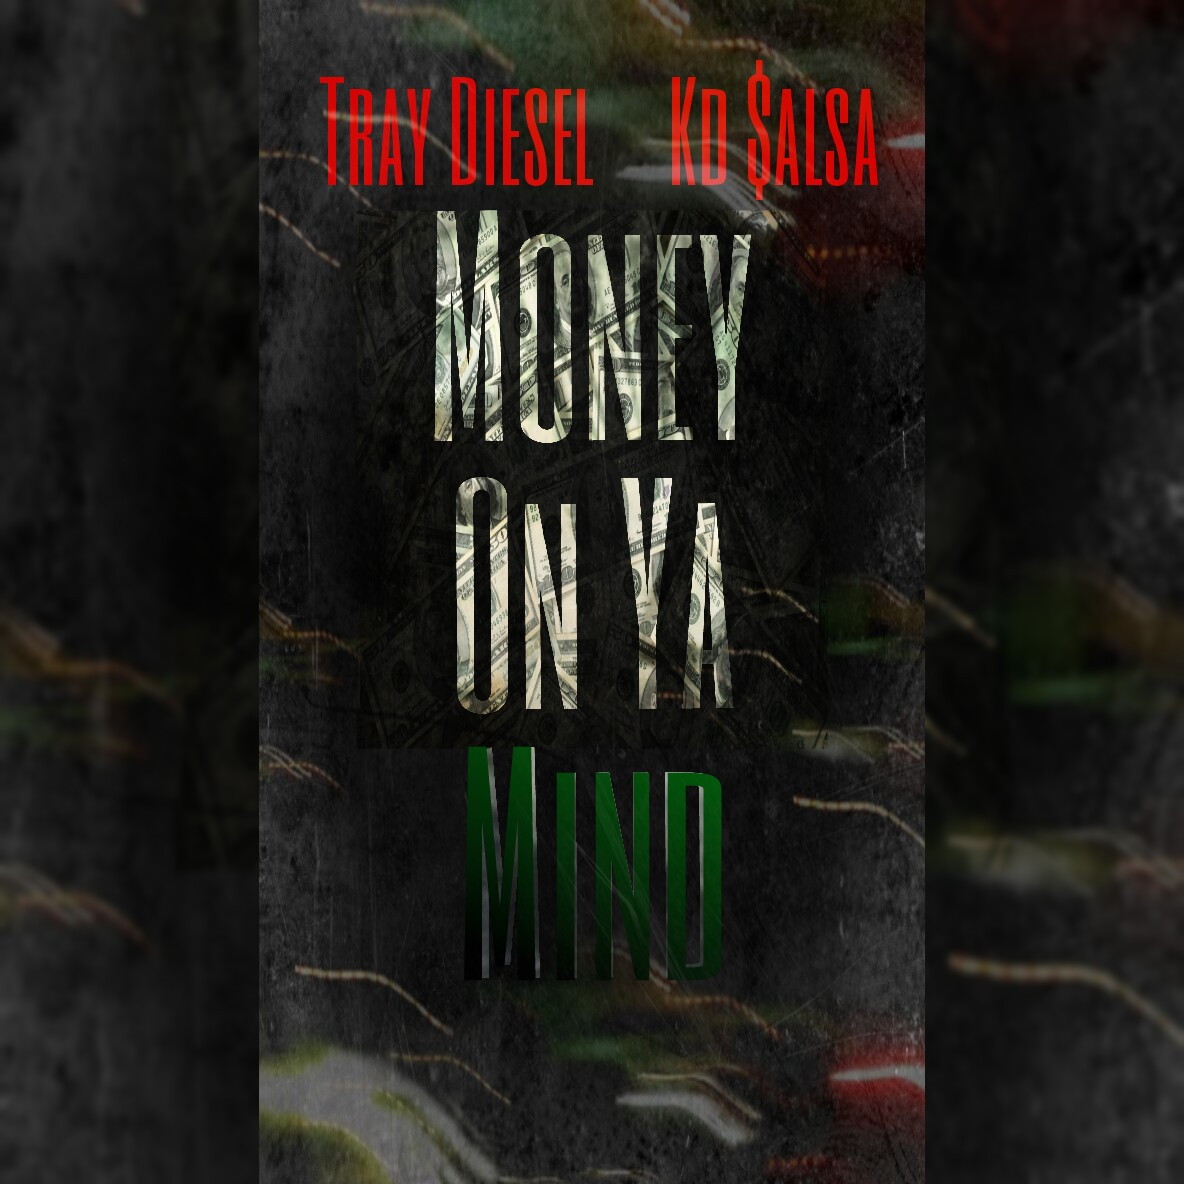 Kd $alsa & Tray Diesel - Money On Ya Mind